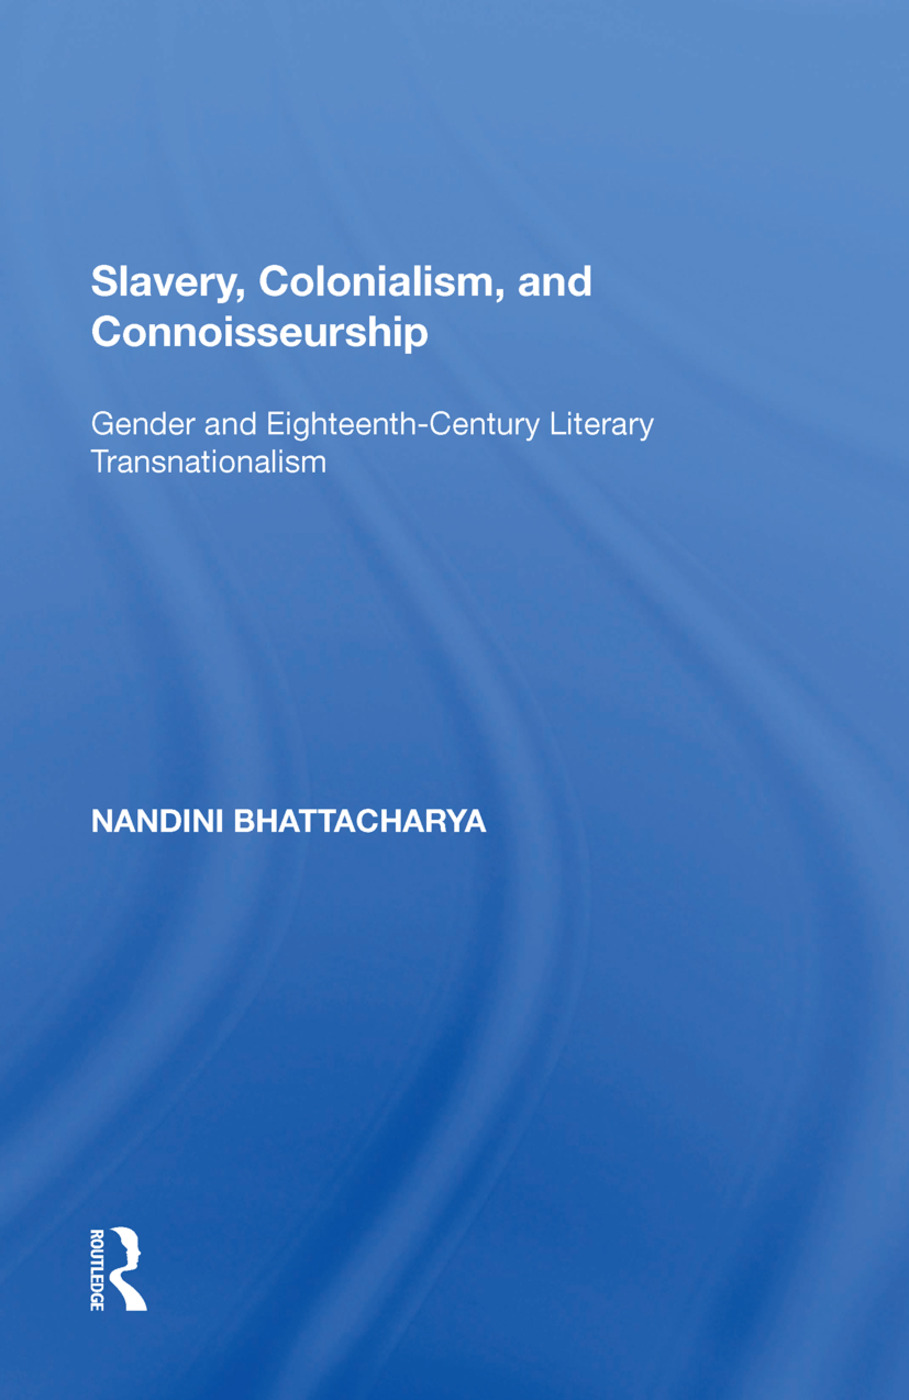 Slavery, Colonialism and Connoisseurship: Gender and Eighteenth-Century Literary Transnationalism, 1st Edition (Paperback) book cover